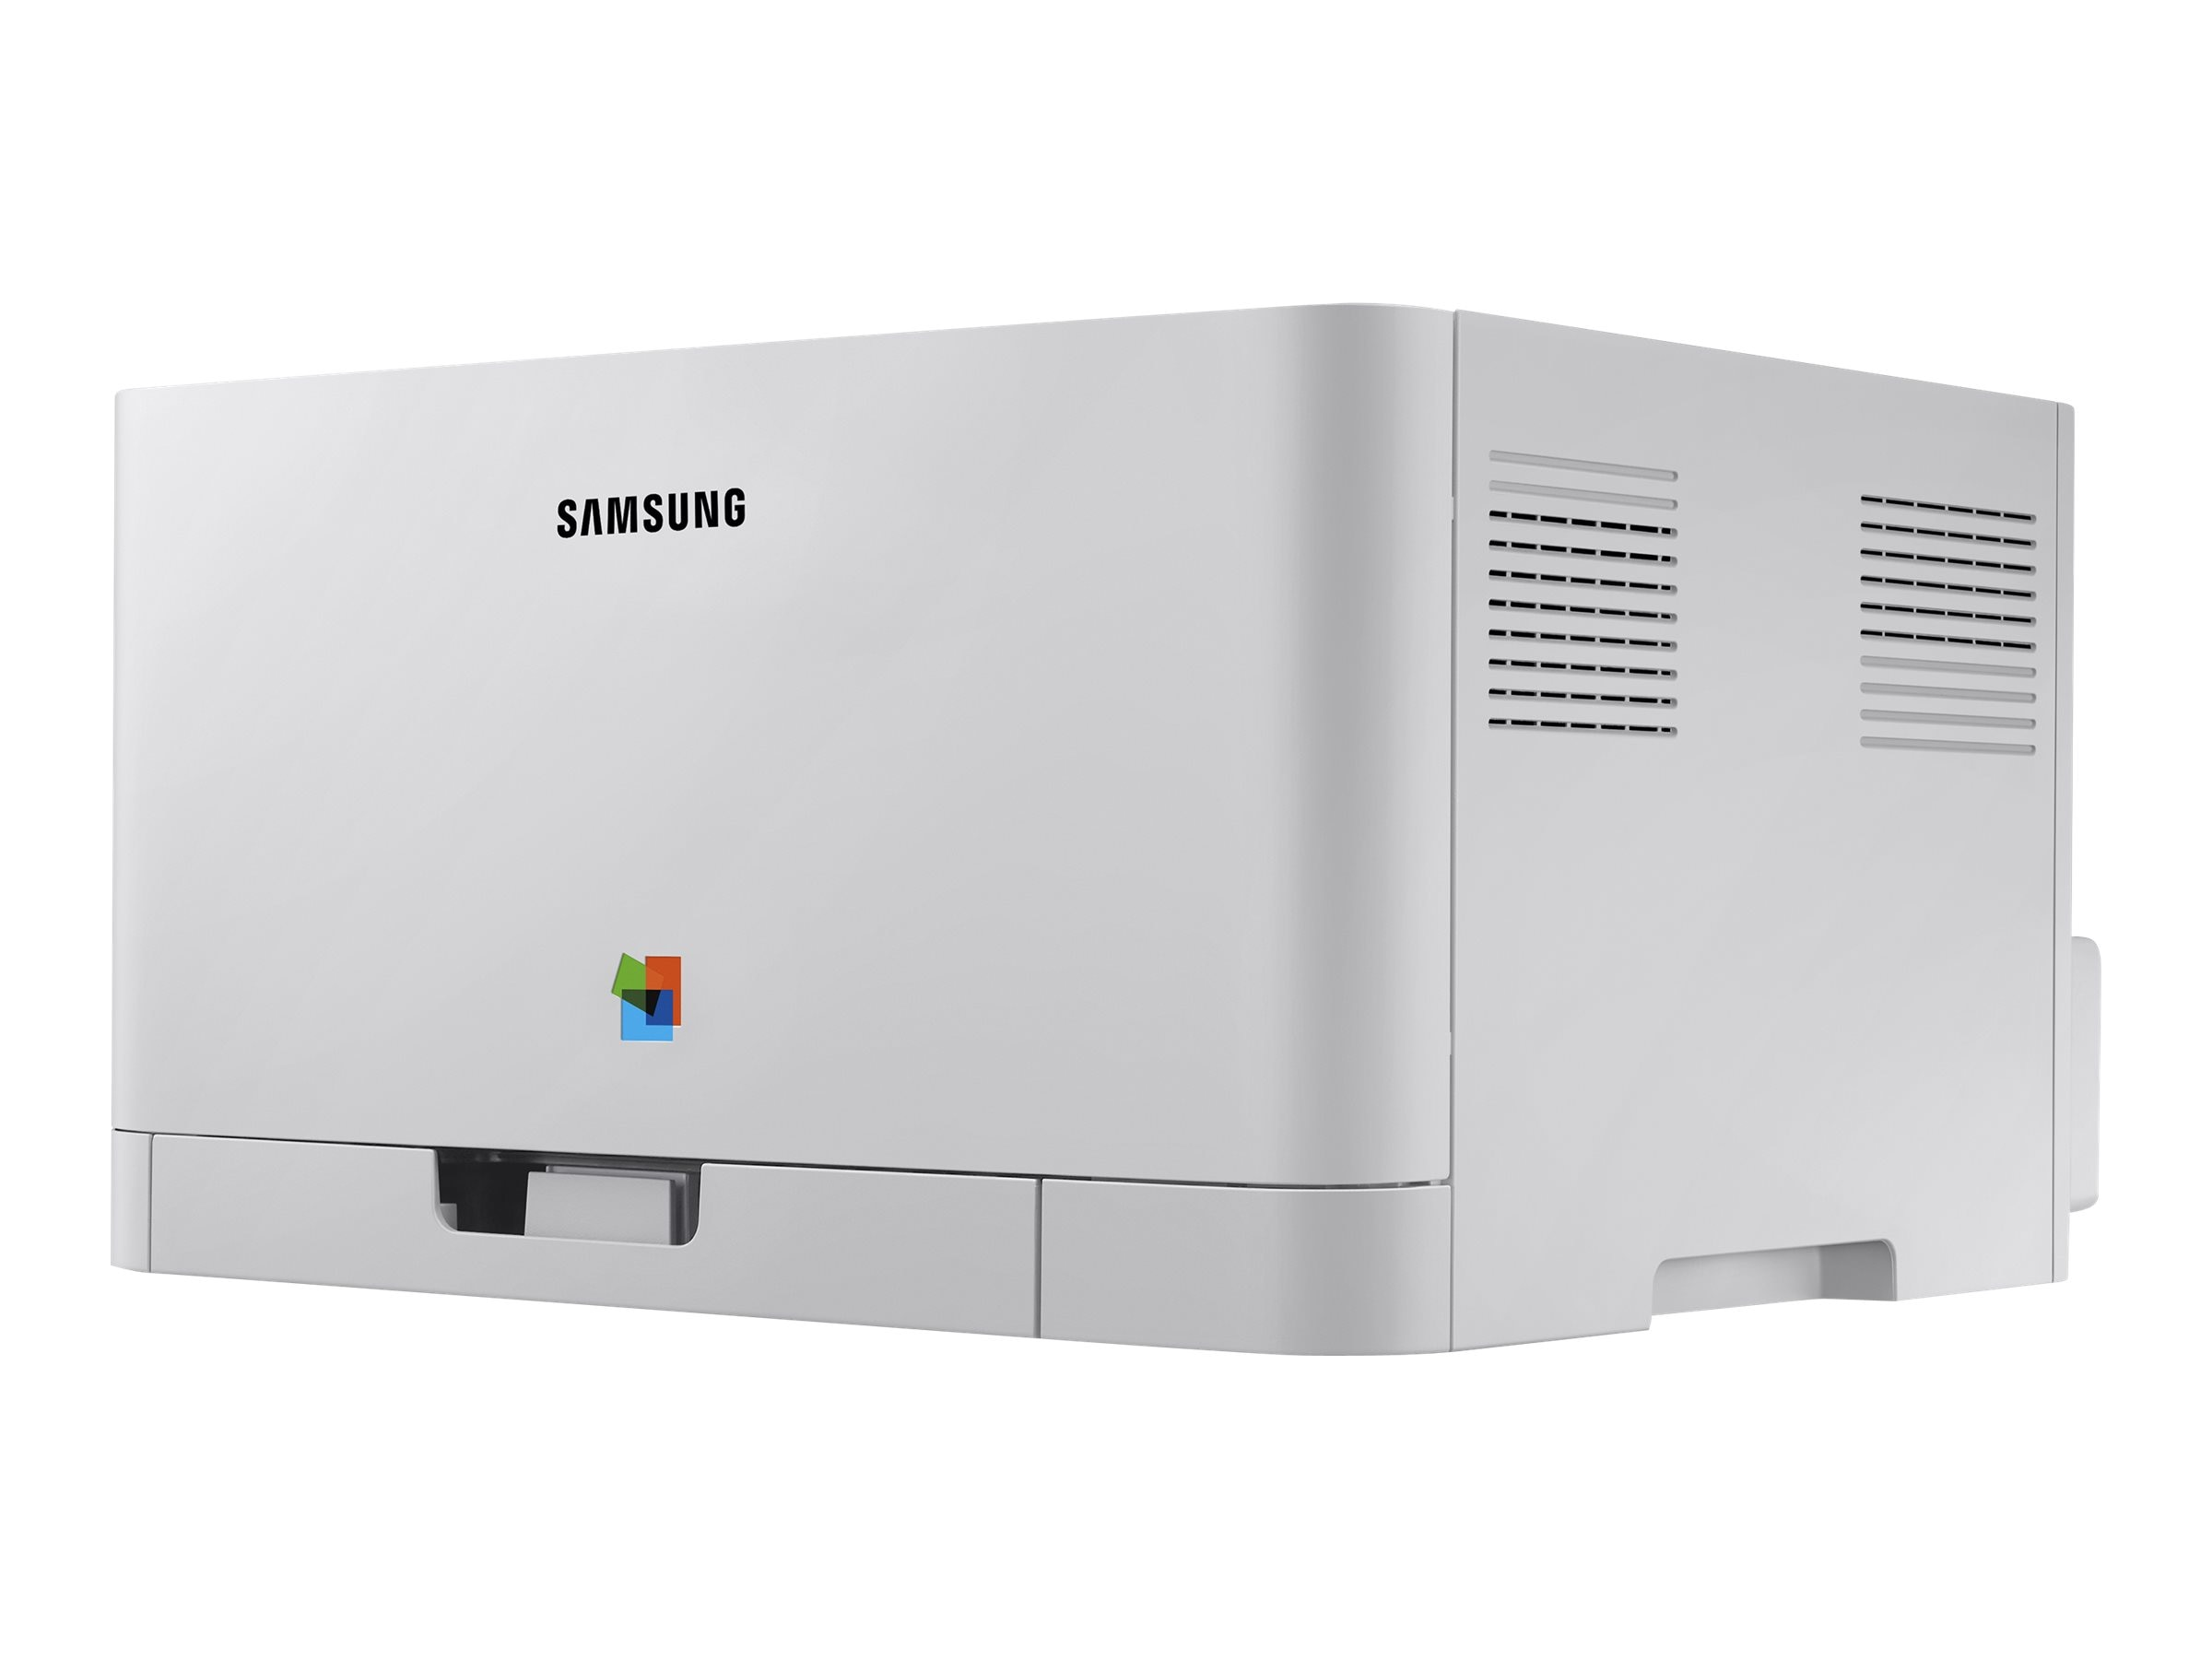 Samsung Printer Xpress C430W, SL-C430W/XAA, 31397291, Printers - Laser & LED (color)